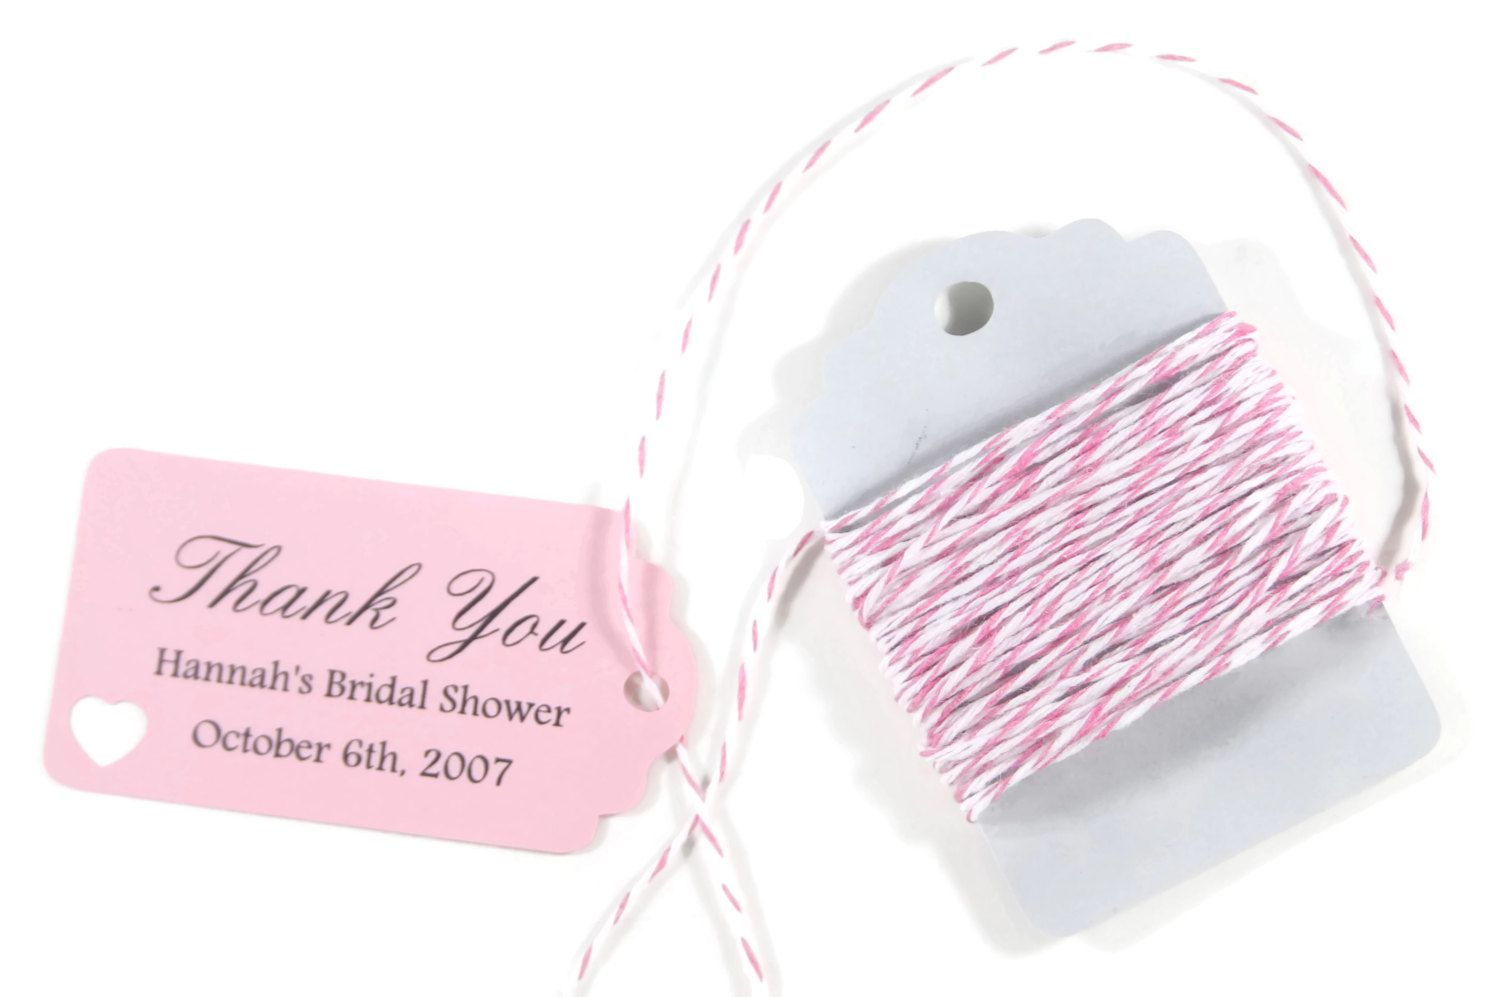 Small Light Pink Bridal Shower Favors Set of 20 - Mini Personalized ...